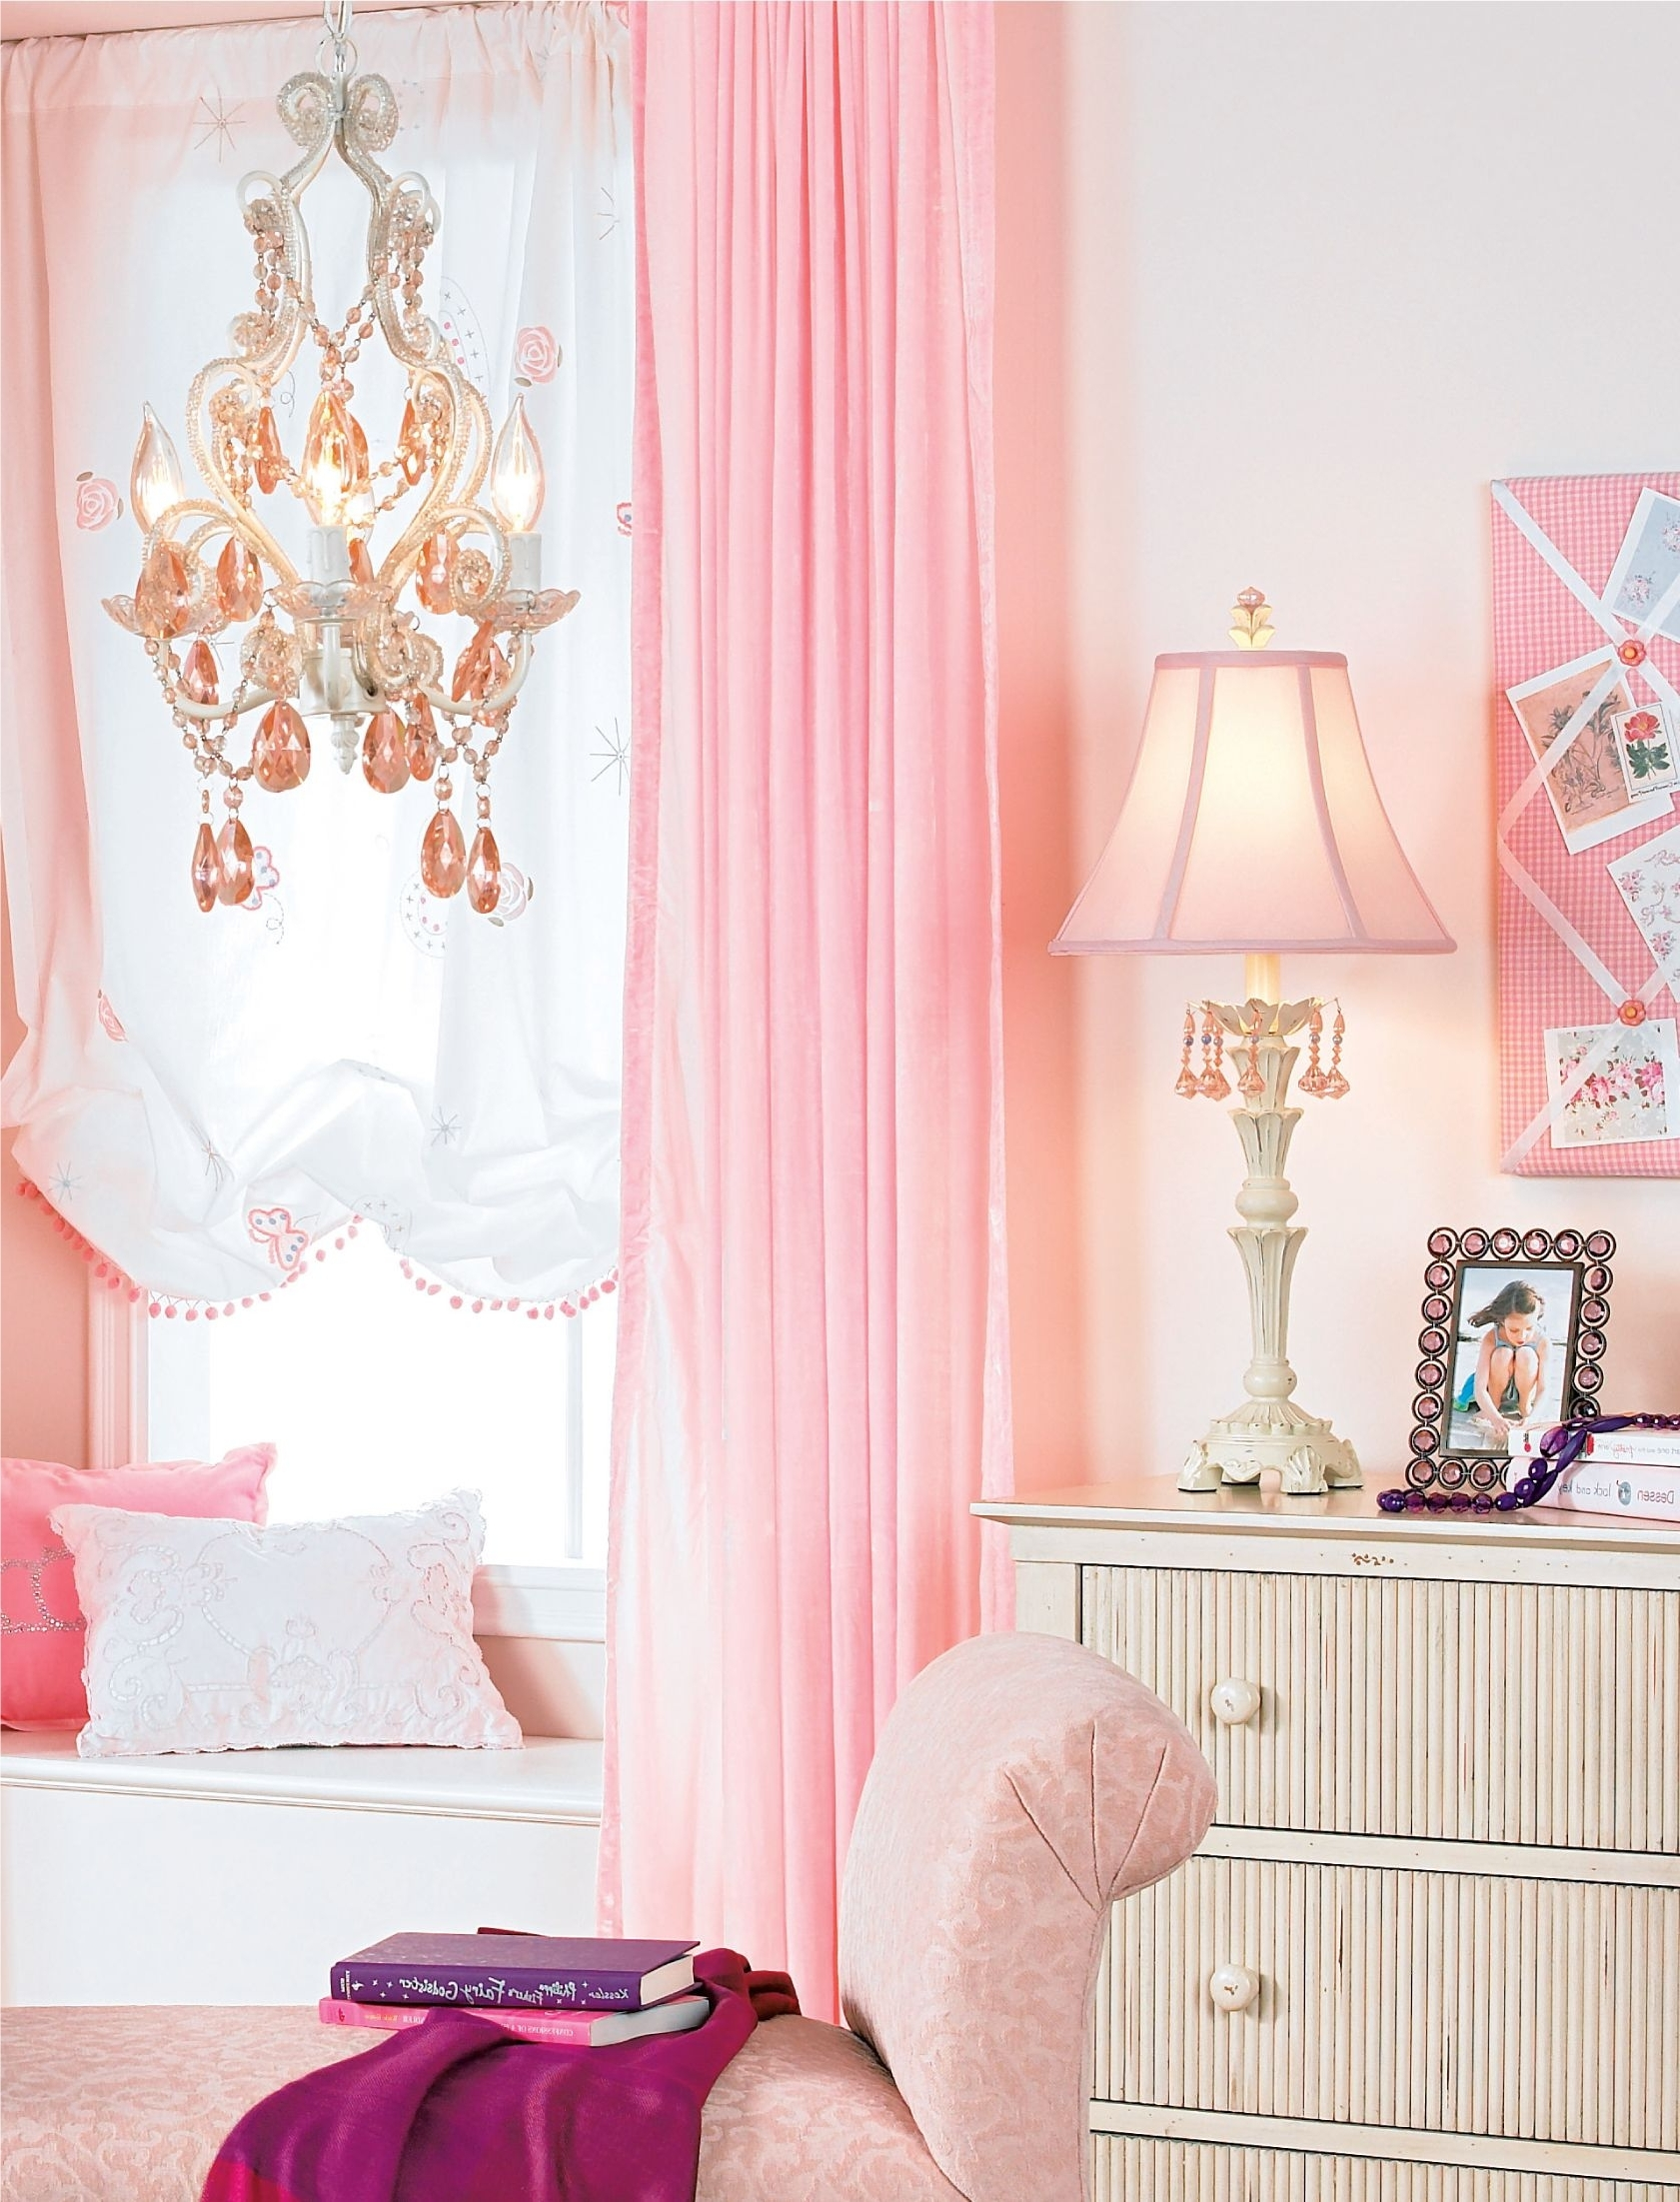 Cheap Chandeliers For Baby Girl Room Throughout Most Recent Chandelier (View 10 of 15)